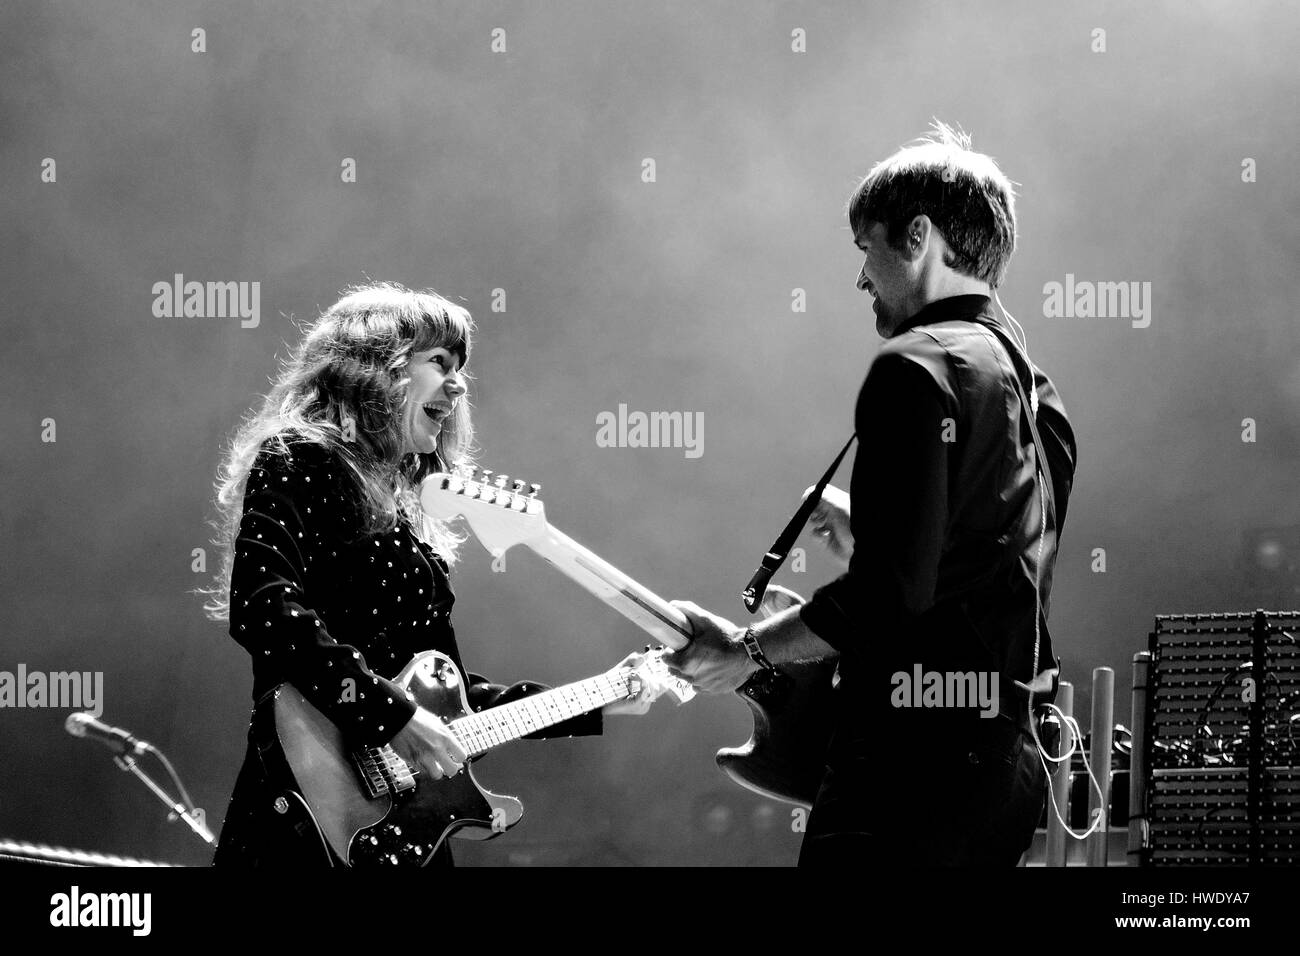 BARCELONA - MAY 23: The Postal Service (American rock musical supergroup) in concert at Heineken Primavera Sound - Stock Image